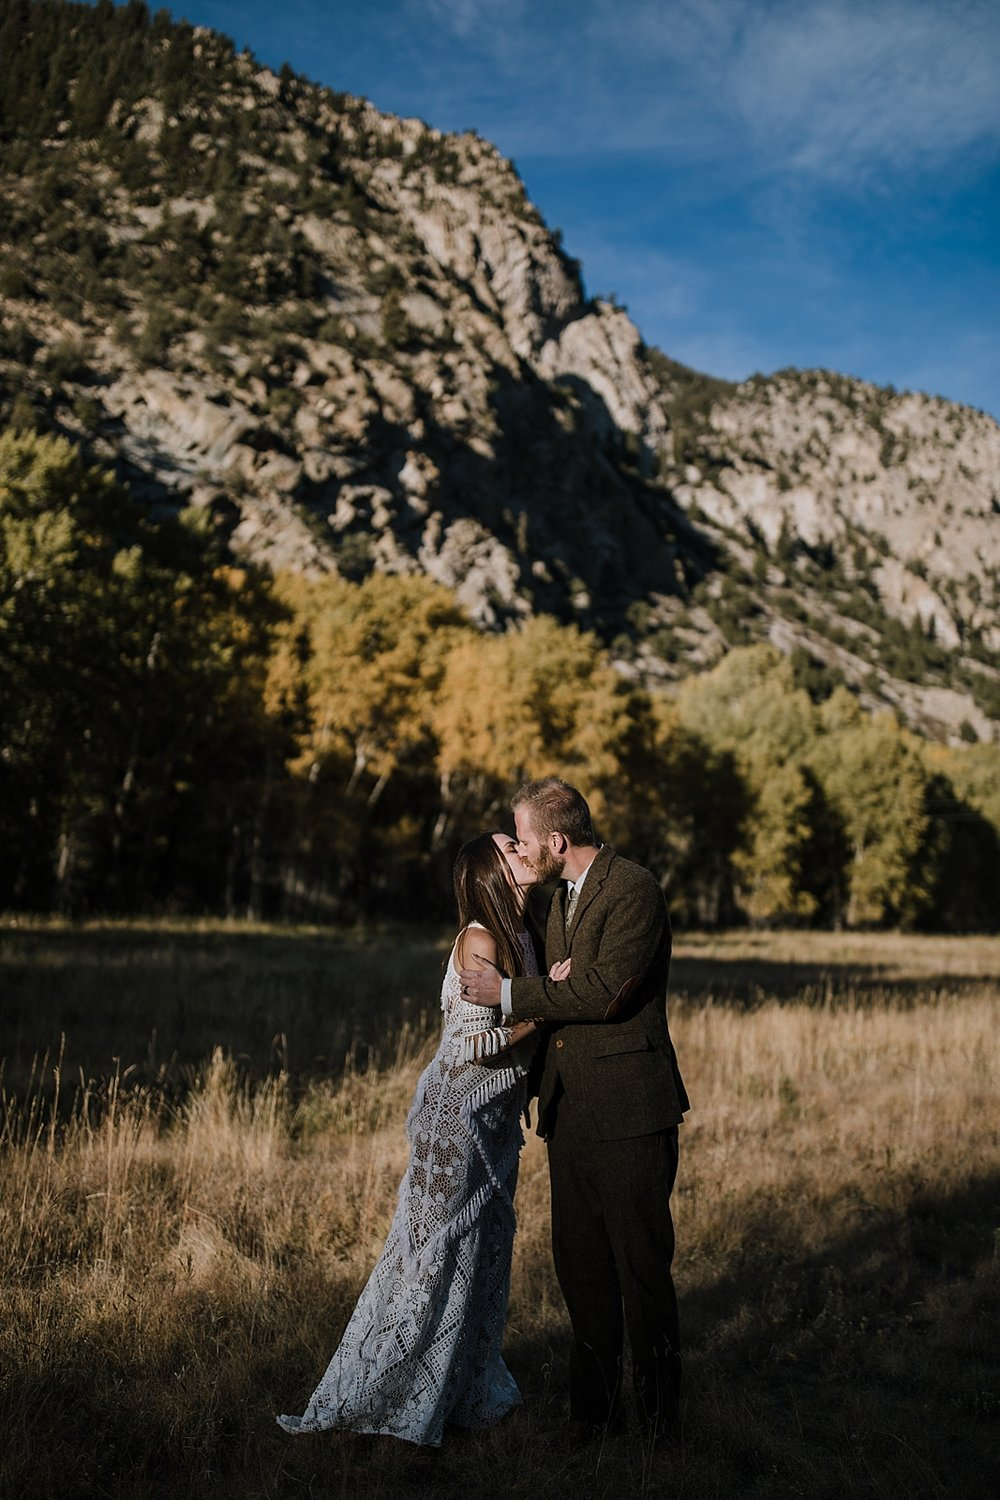 buena vista mountains, norway elopement, post elopement celebration, wedding in the woods, buena vista elopement, buena vista wedding, nathrop colorado wedding, adventurous colorado elopement